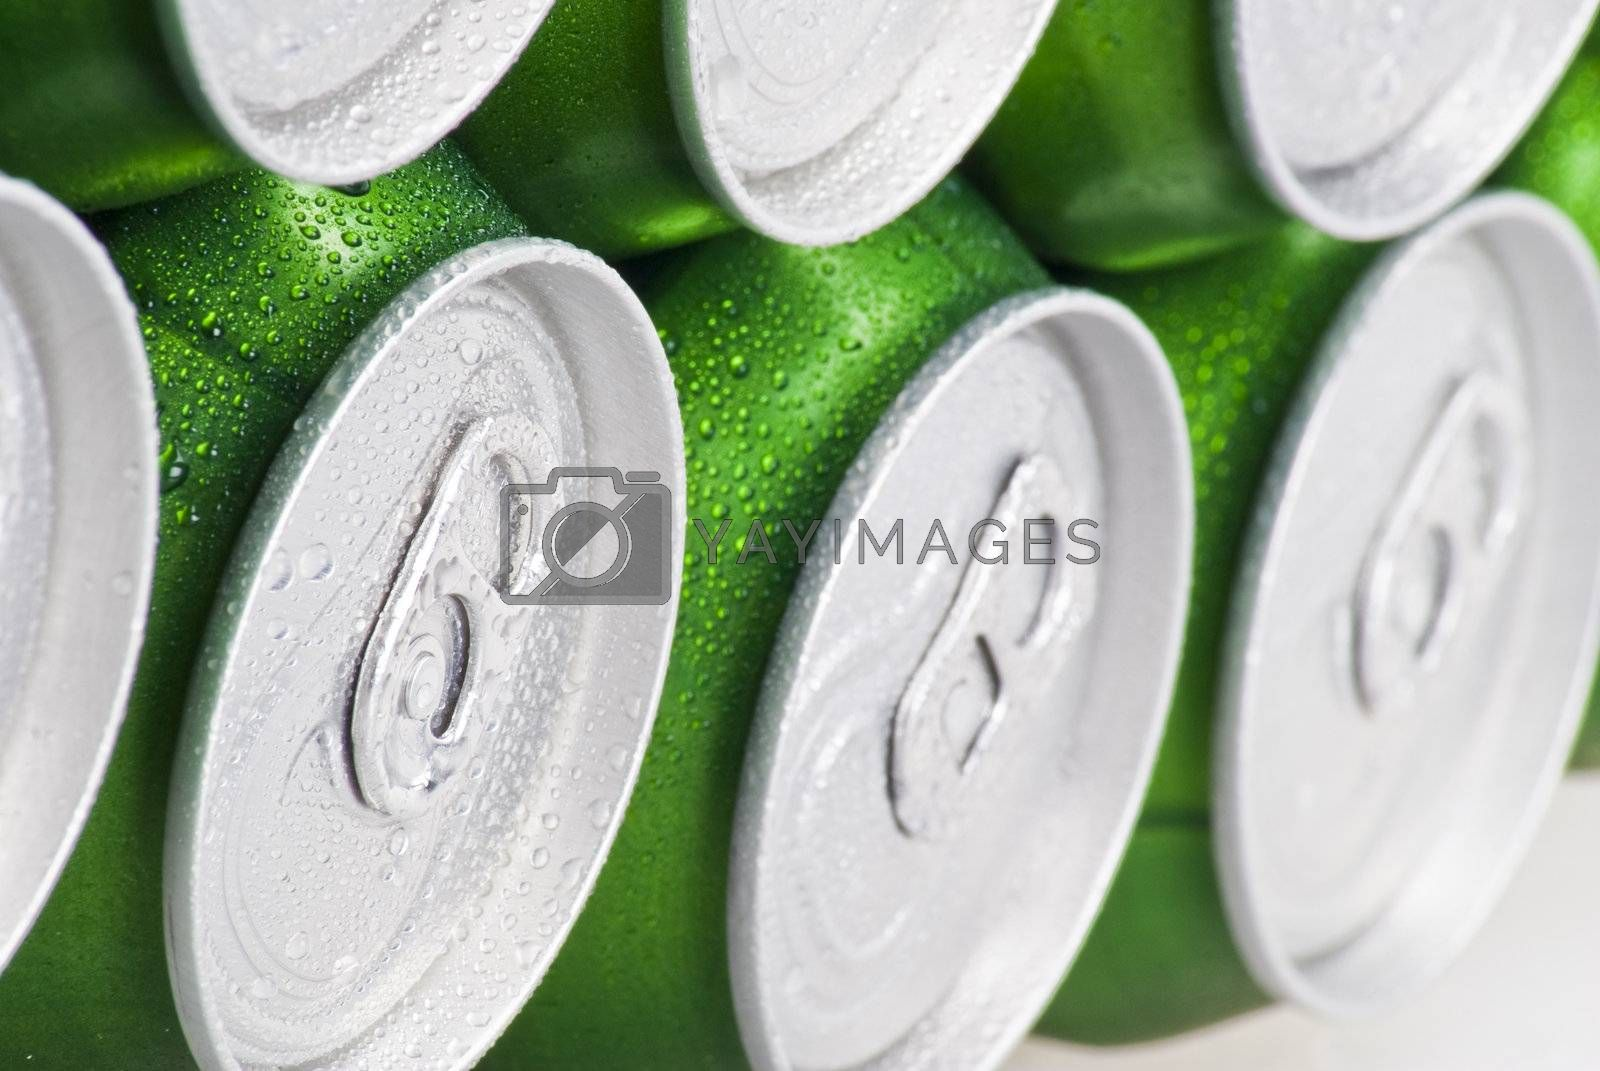 Drinks can tops by caldix